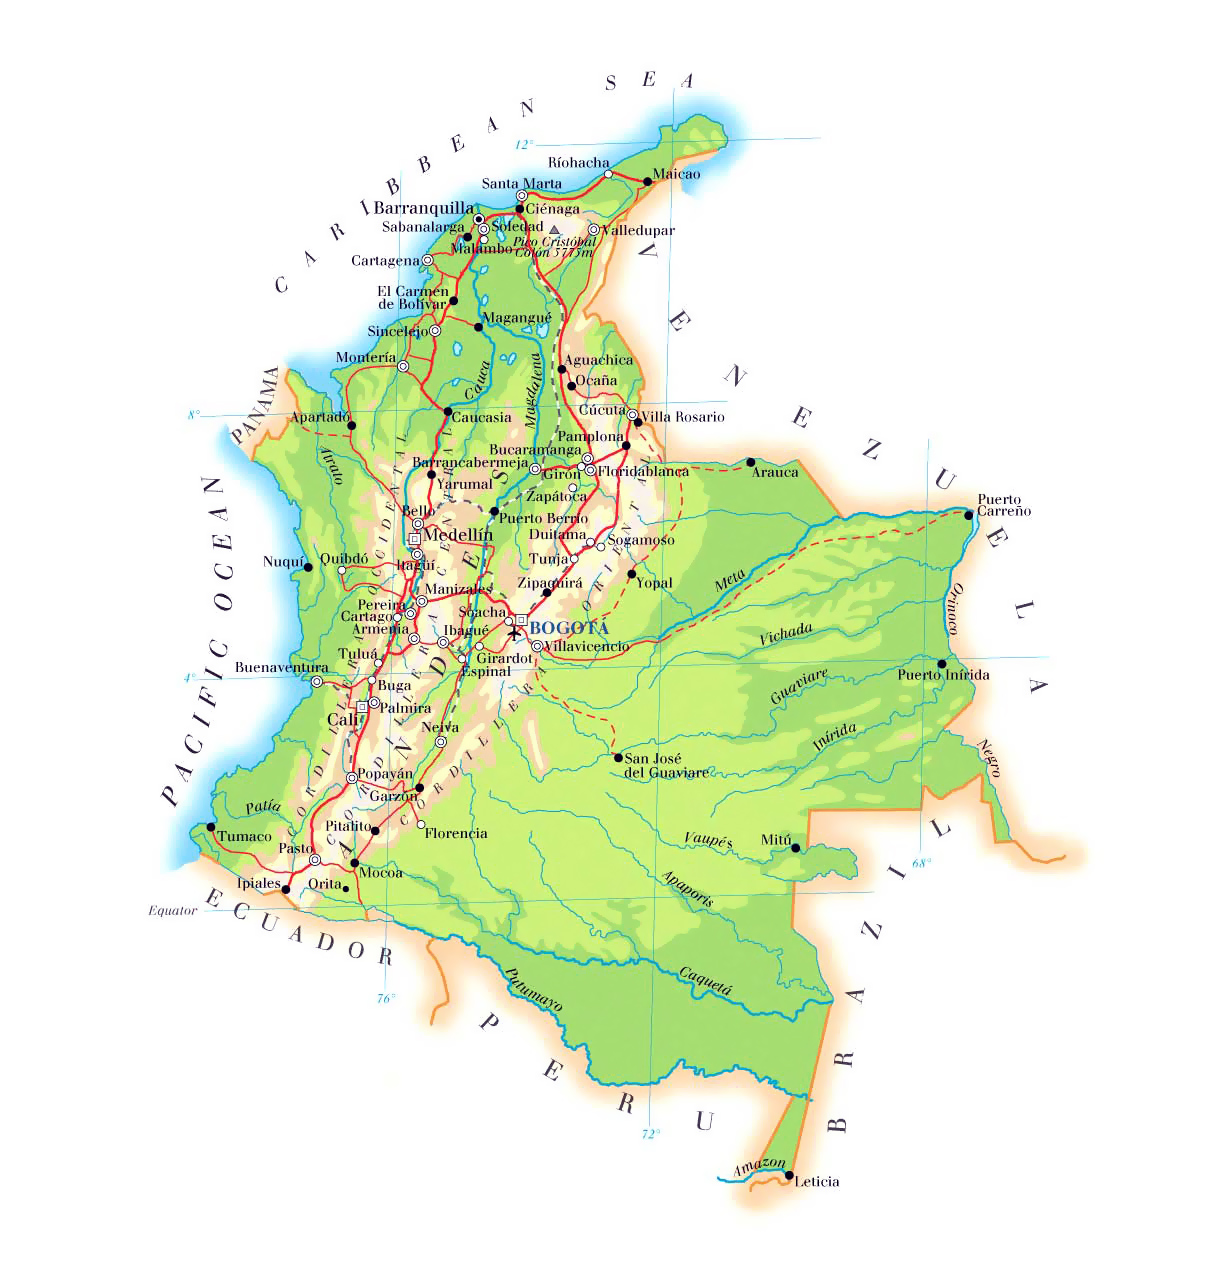 Elevation map of Colombia with roads, cities and airports